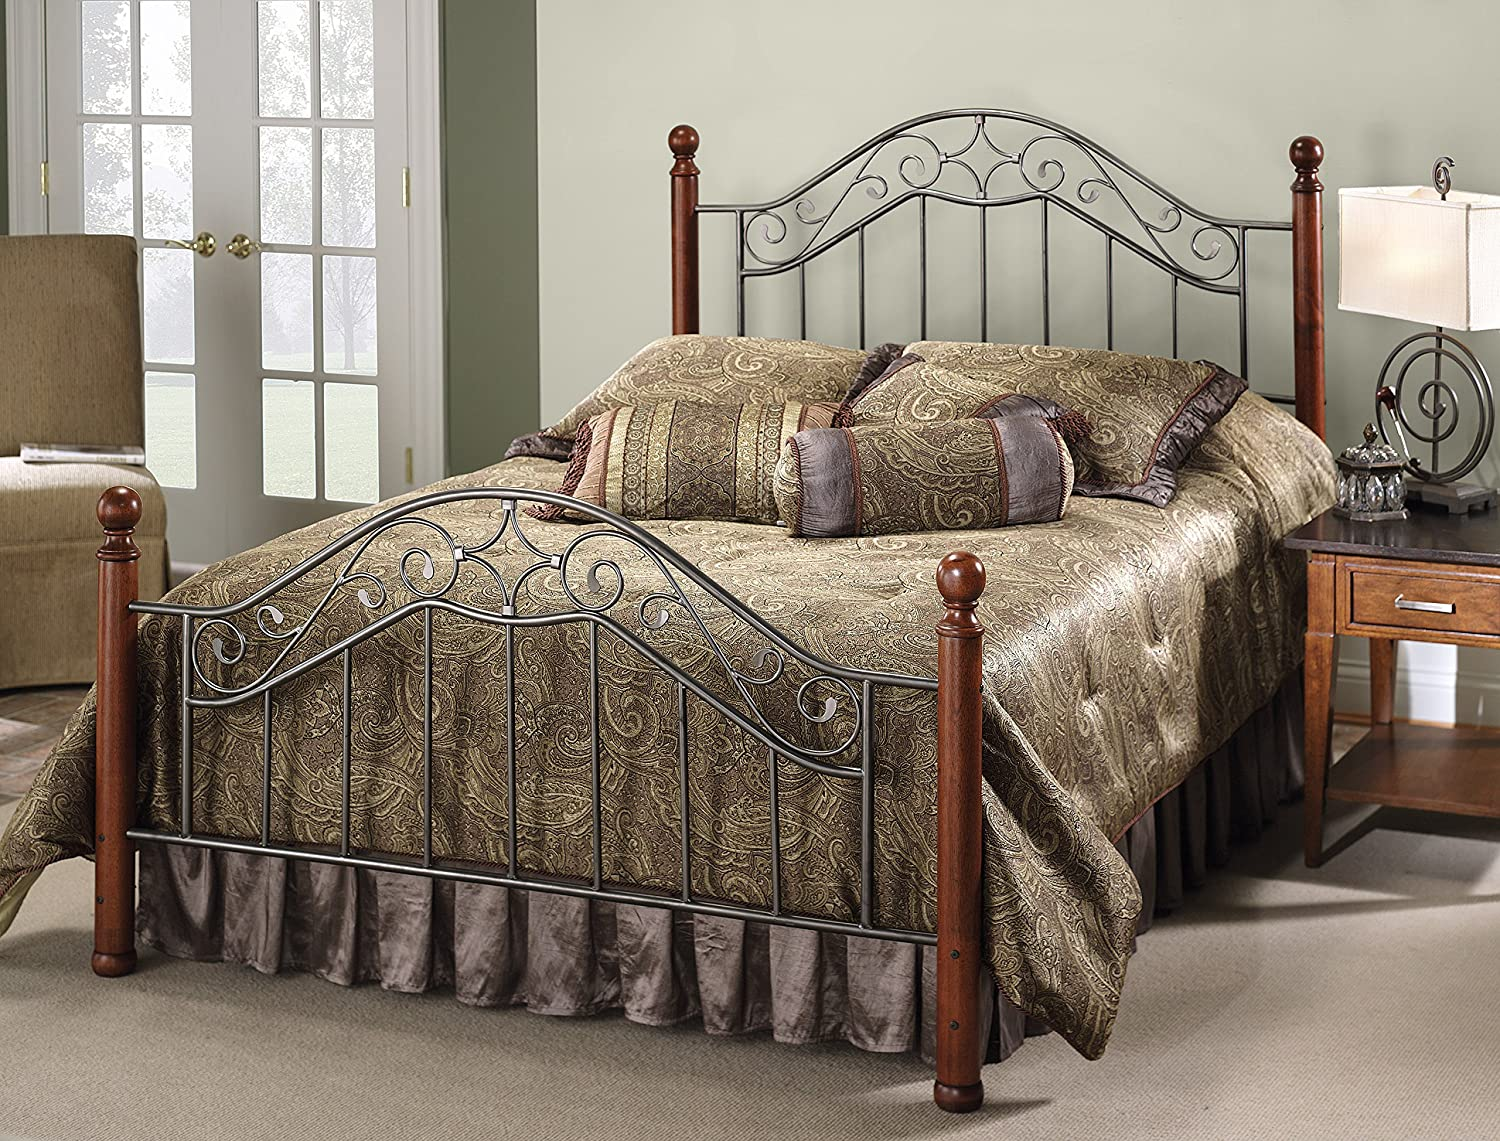 Antique iron bed rails - Amazon Com Hillsdale Furniture 1392bqr Martino Bed Set With Rails Queen Smoke Silver Kitchen Dining